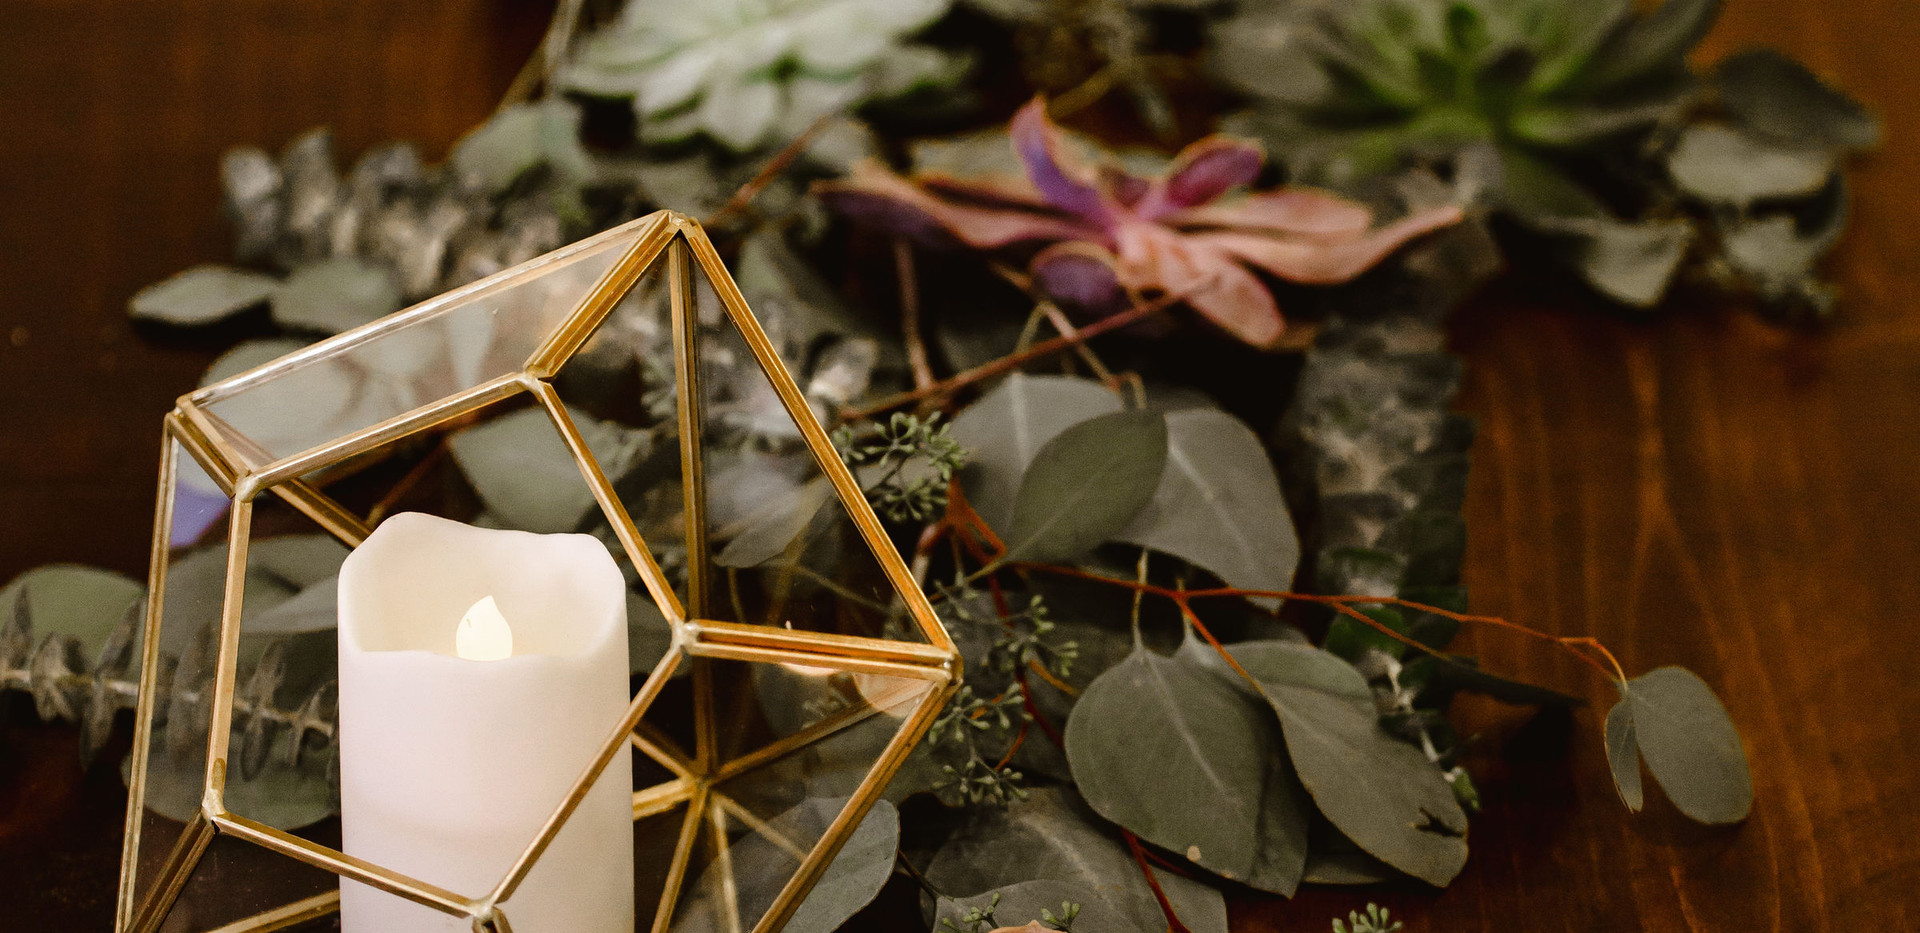 Eucalyptus and Succulent Greenery Table Runner with Gold Geometric candle holders and sprigs of dried lavender